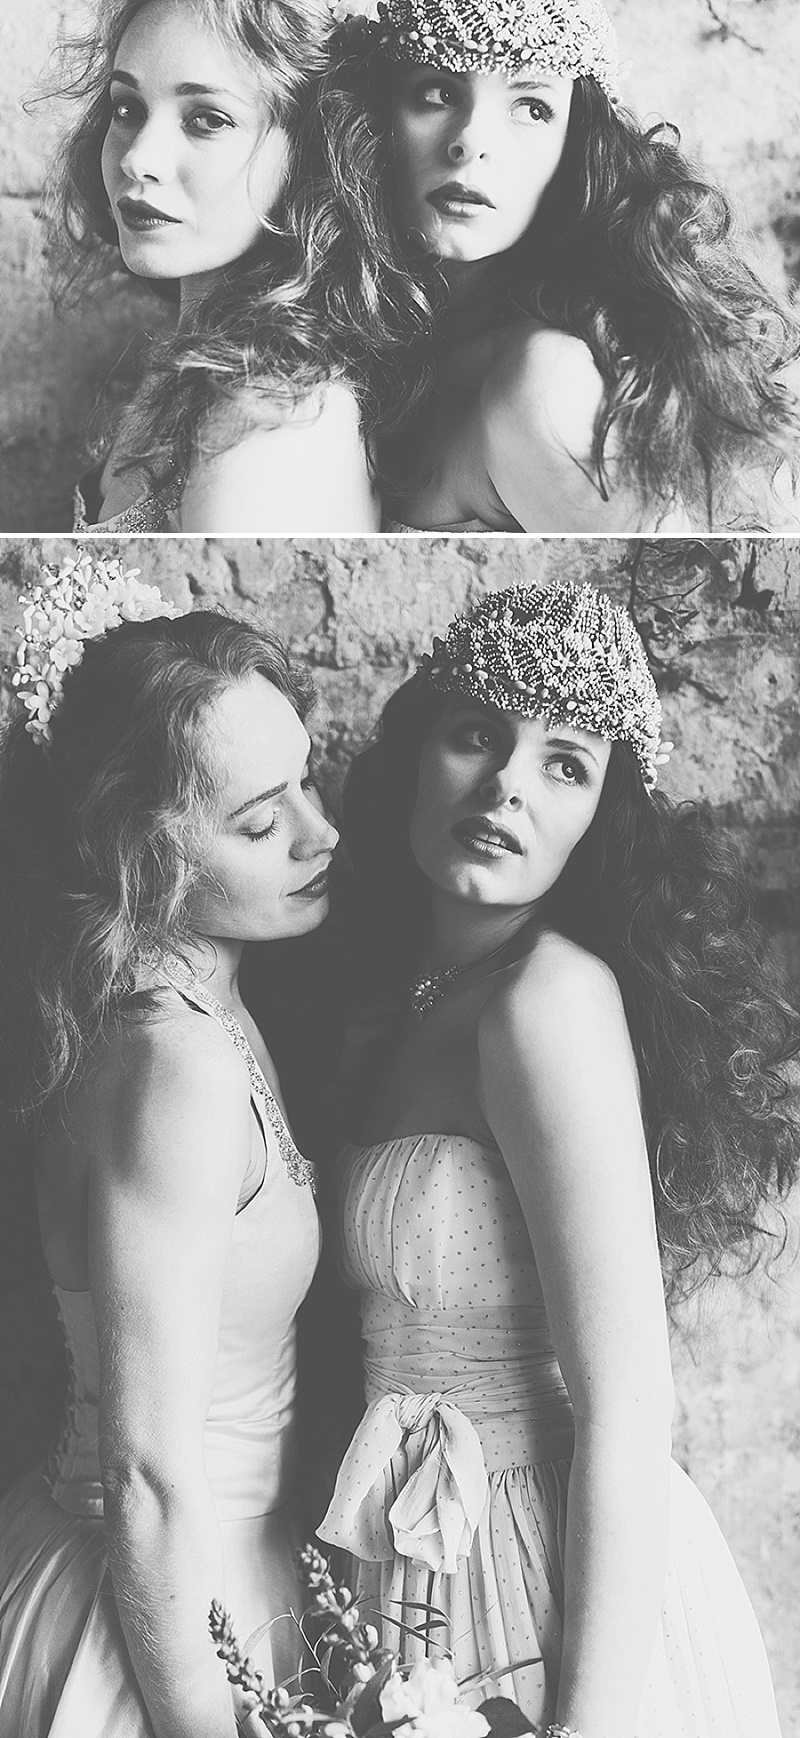 Rustic And Romantic Fairytale Bridal Inspiration Shoot With Gowns From Faith Caton-Barber And Accessories From Rosie Weisencrantz With Images By Miss Gen Photography 5